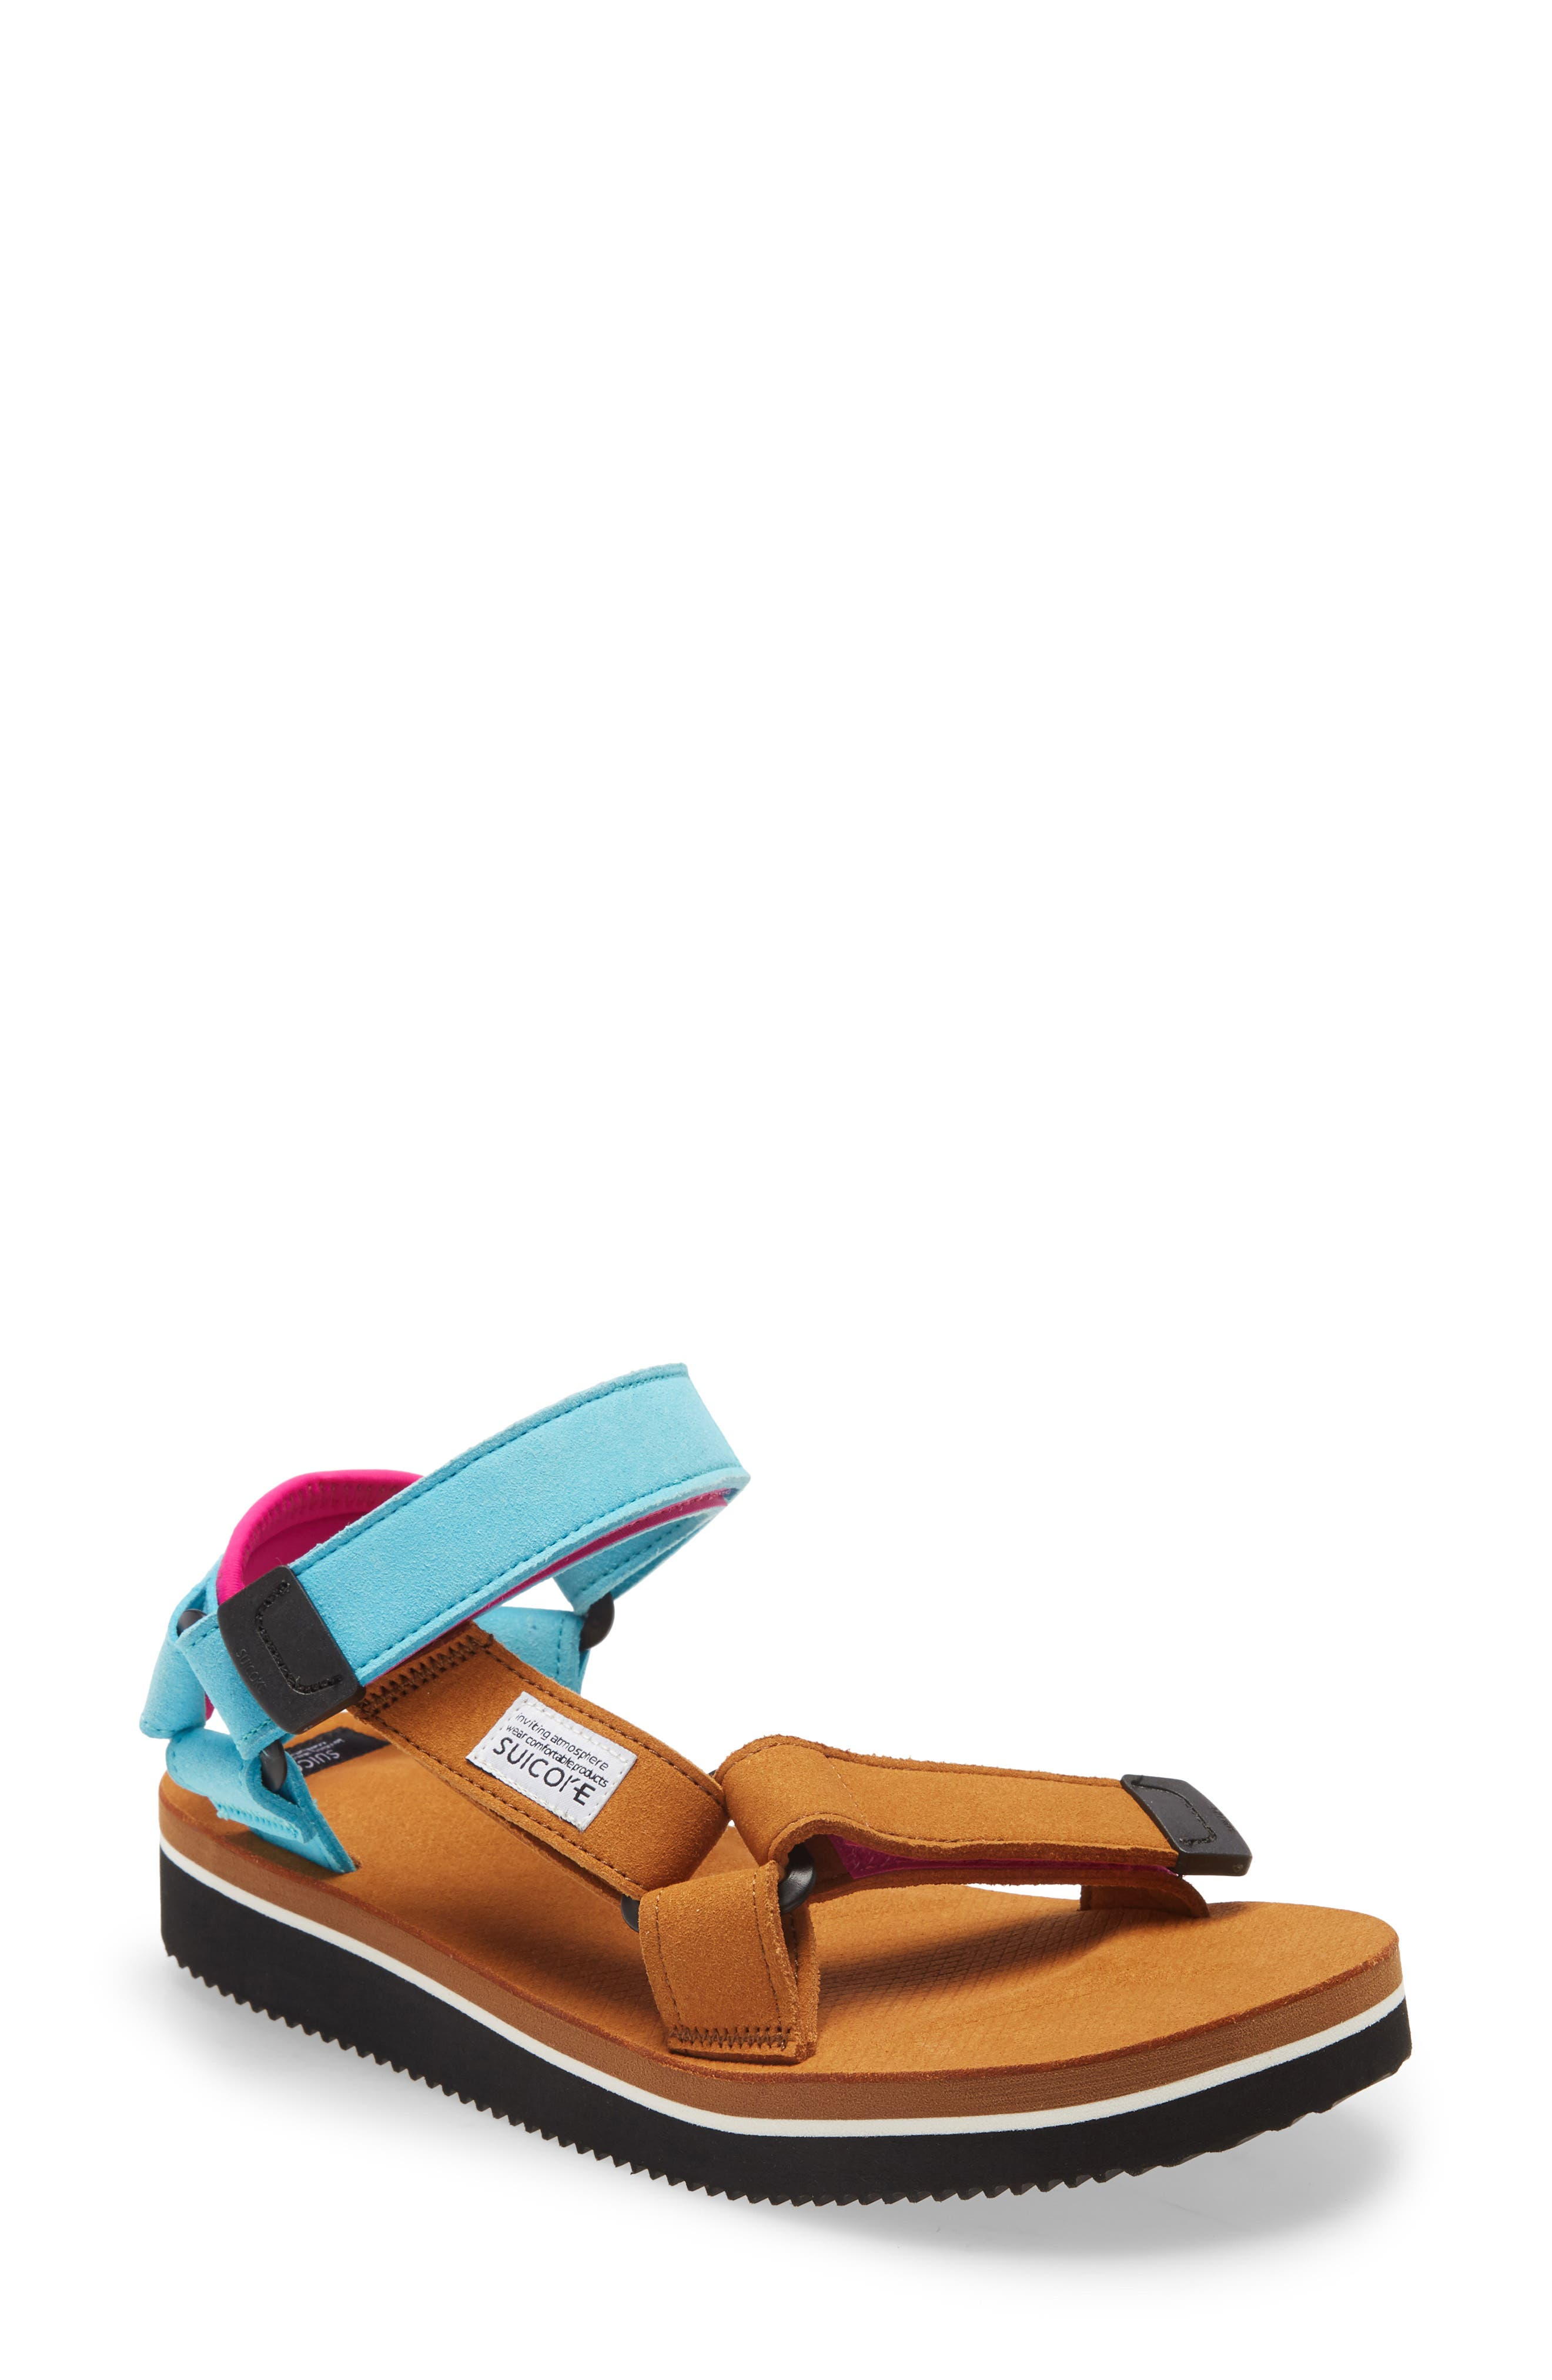 Comfortable enough for the outdoors and cool enough for the streets, this color-blocked sandal sports adjustable faux-suede straps and a cushioned heel pad. The molded, anatomical footbed provides optimal support and features antibacterial properties to keep feet feeling fresh. Style Name: Suicoke Depa-Ecs Sandal (Unisex). Style Number: 6070137. Available in stores.